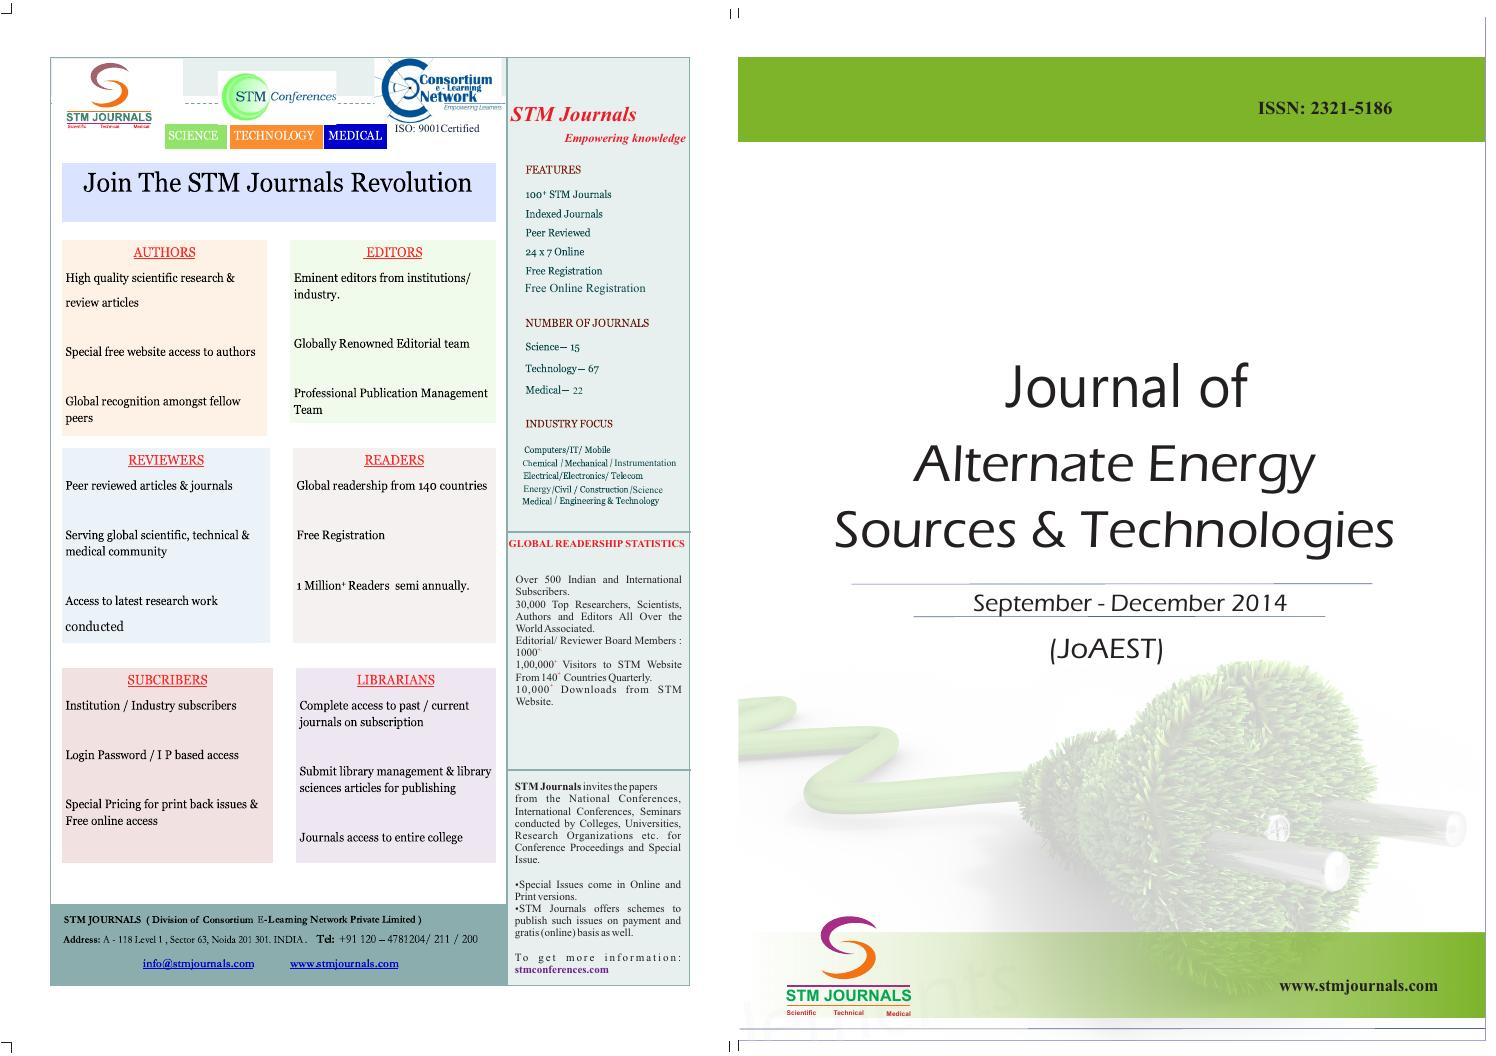 Journal of alternate energy sources & technologies (vol5